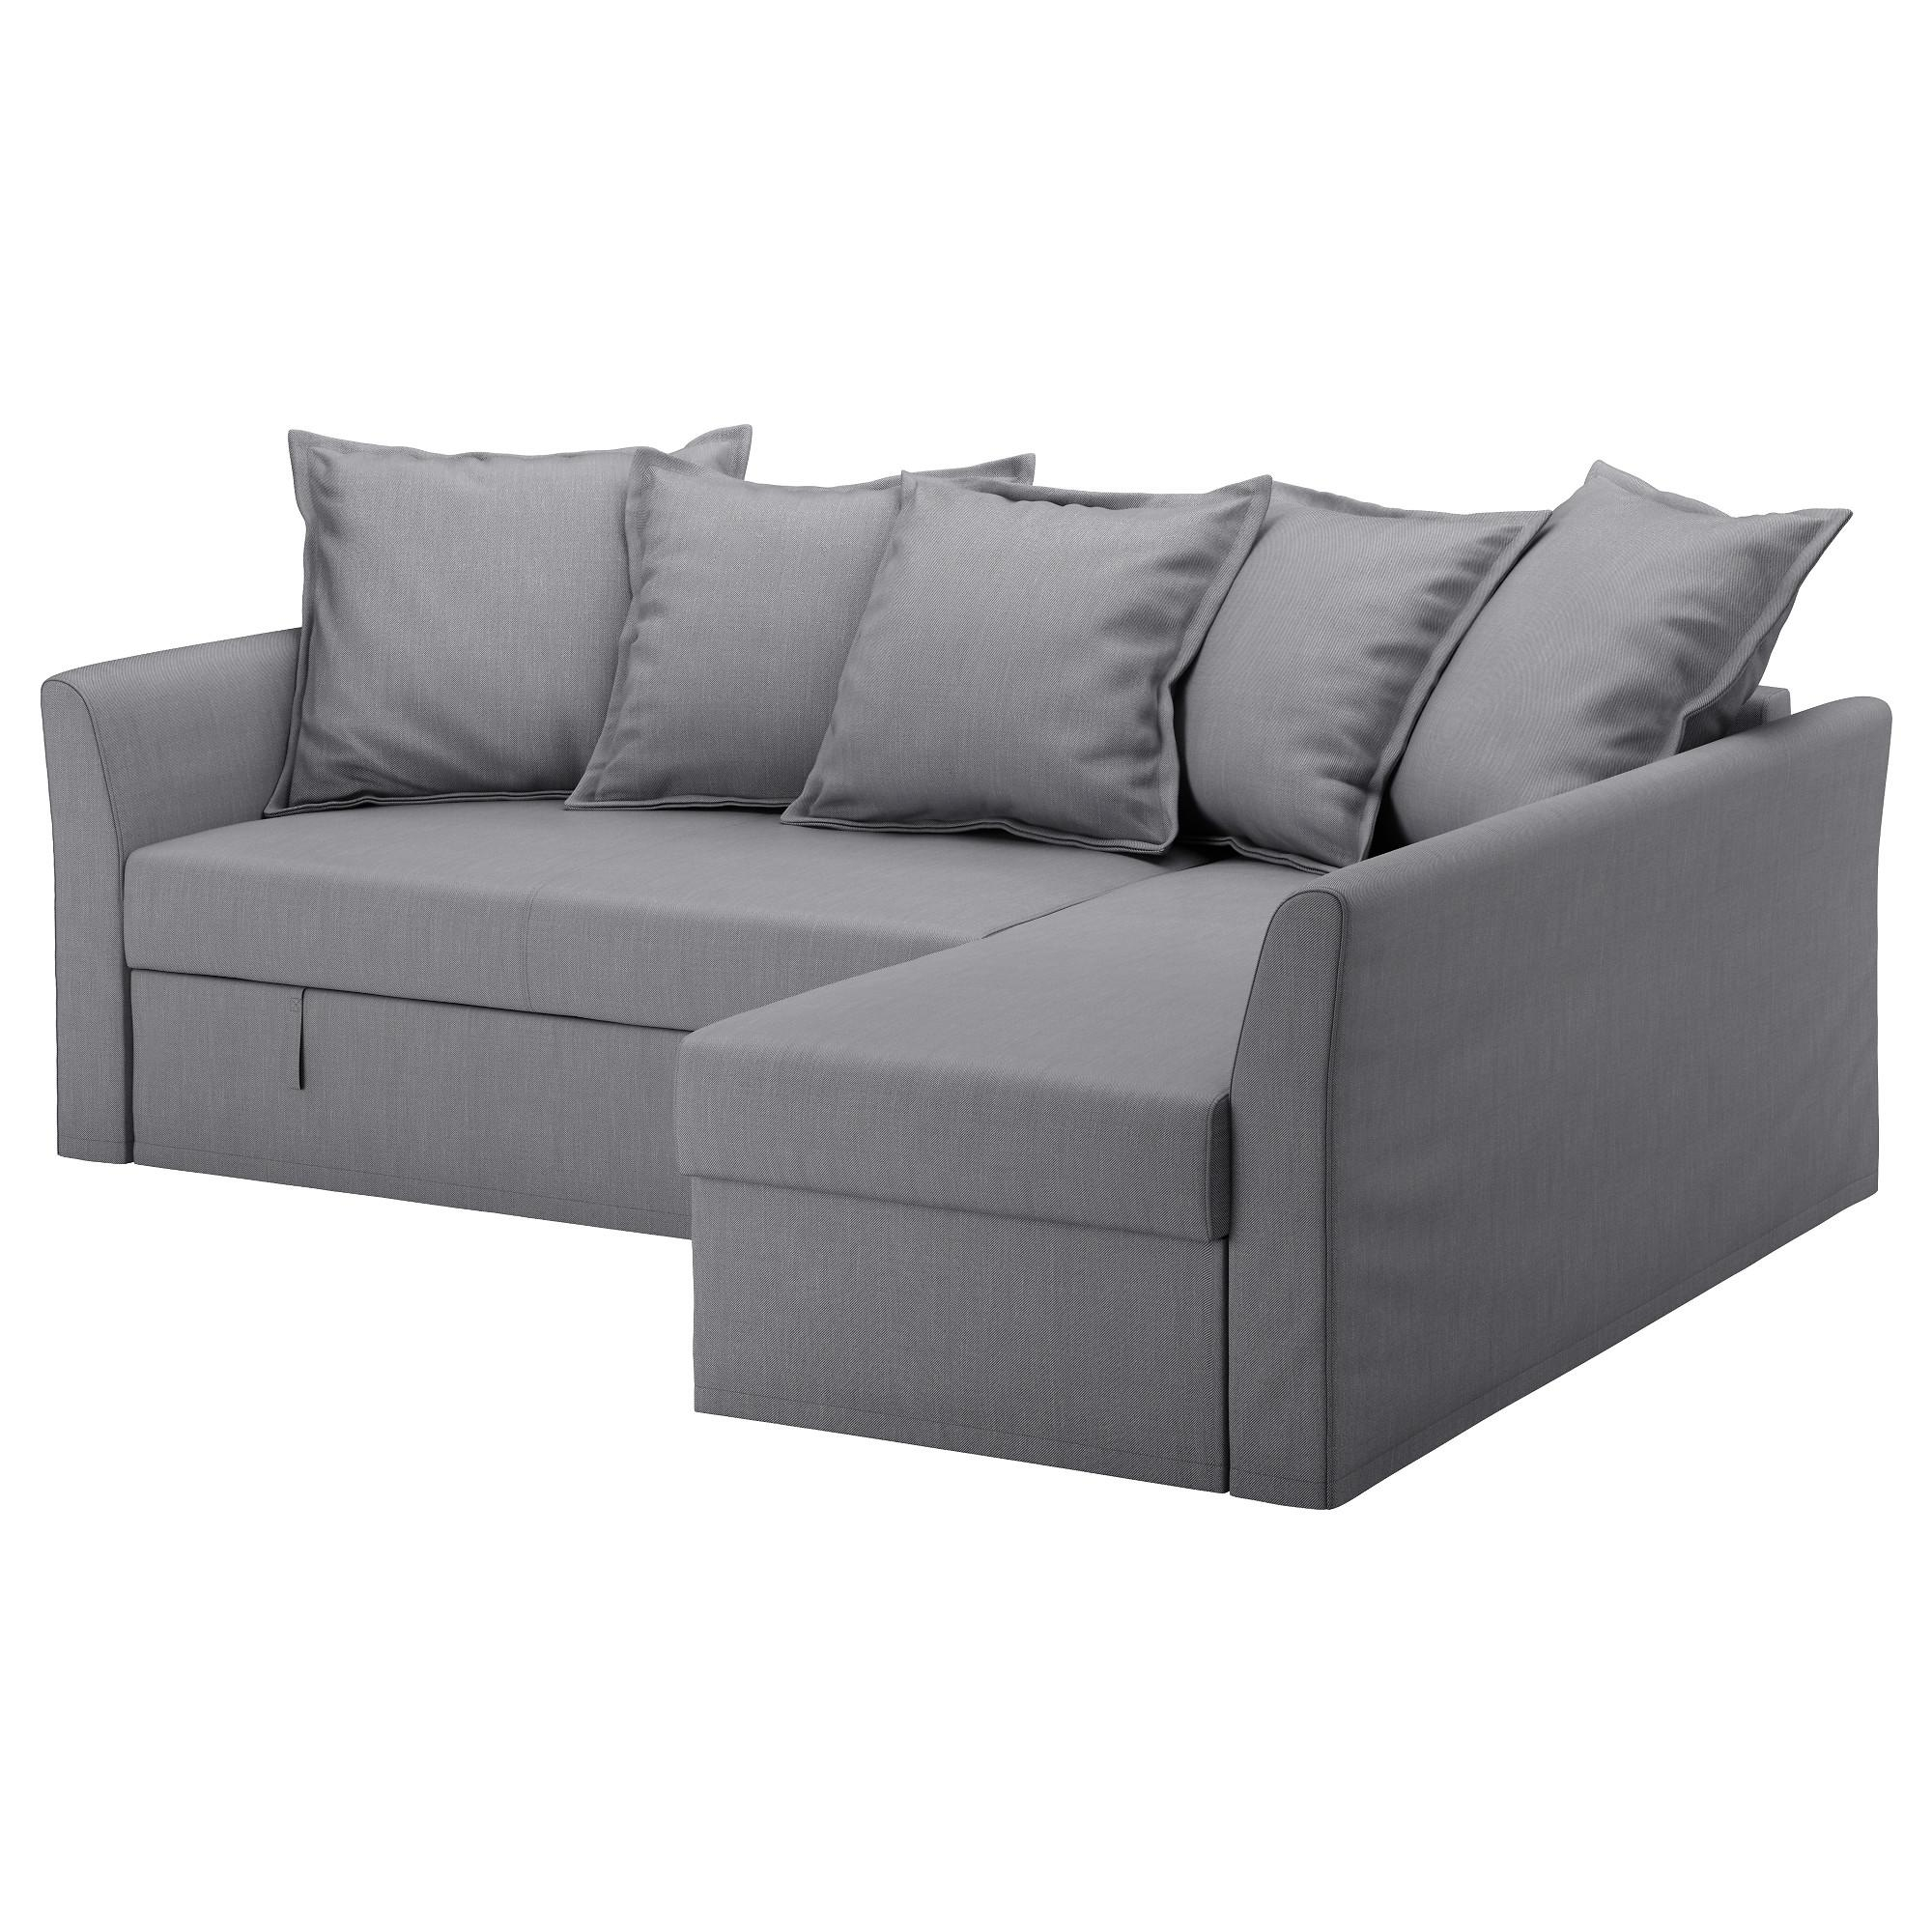 20 Best Ikea Loveseat Sleeper Sofas Sofa Ideas